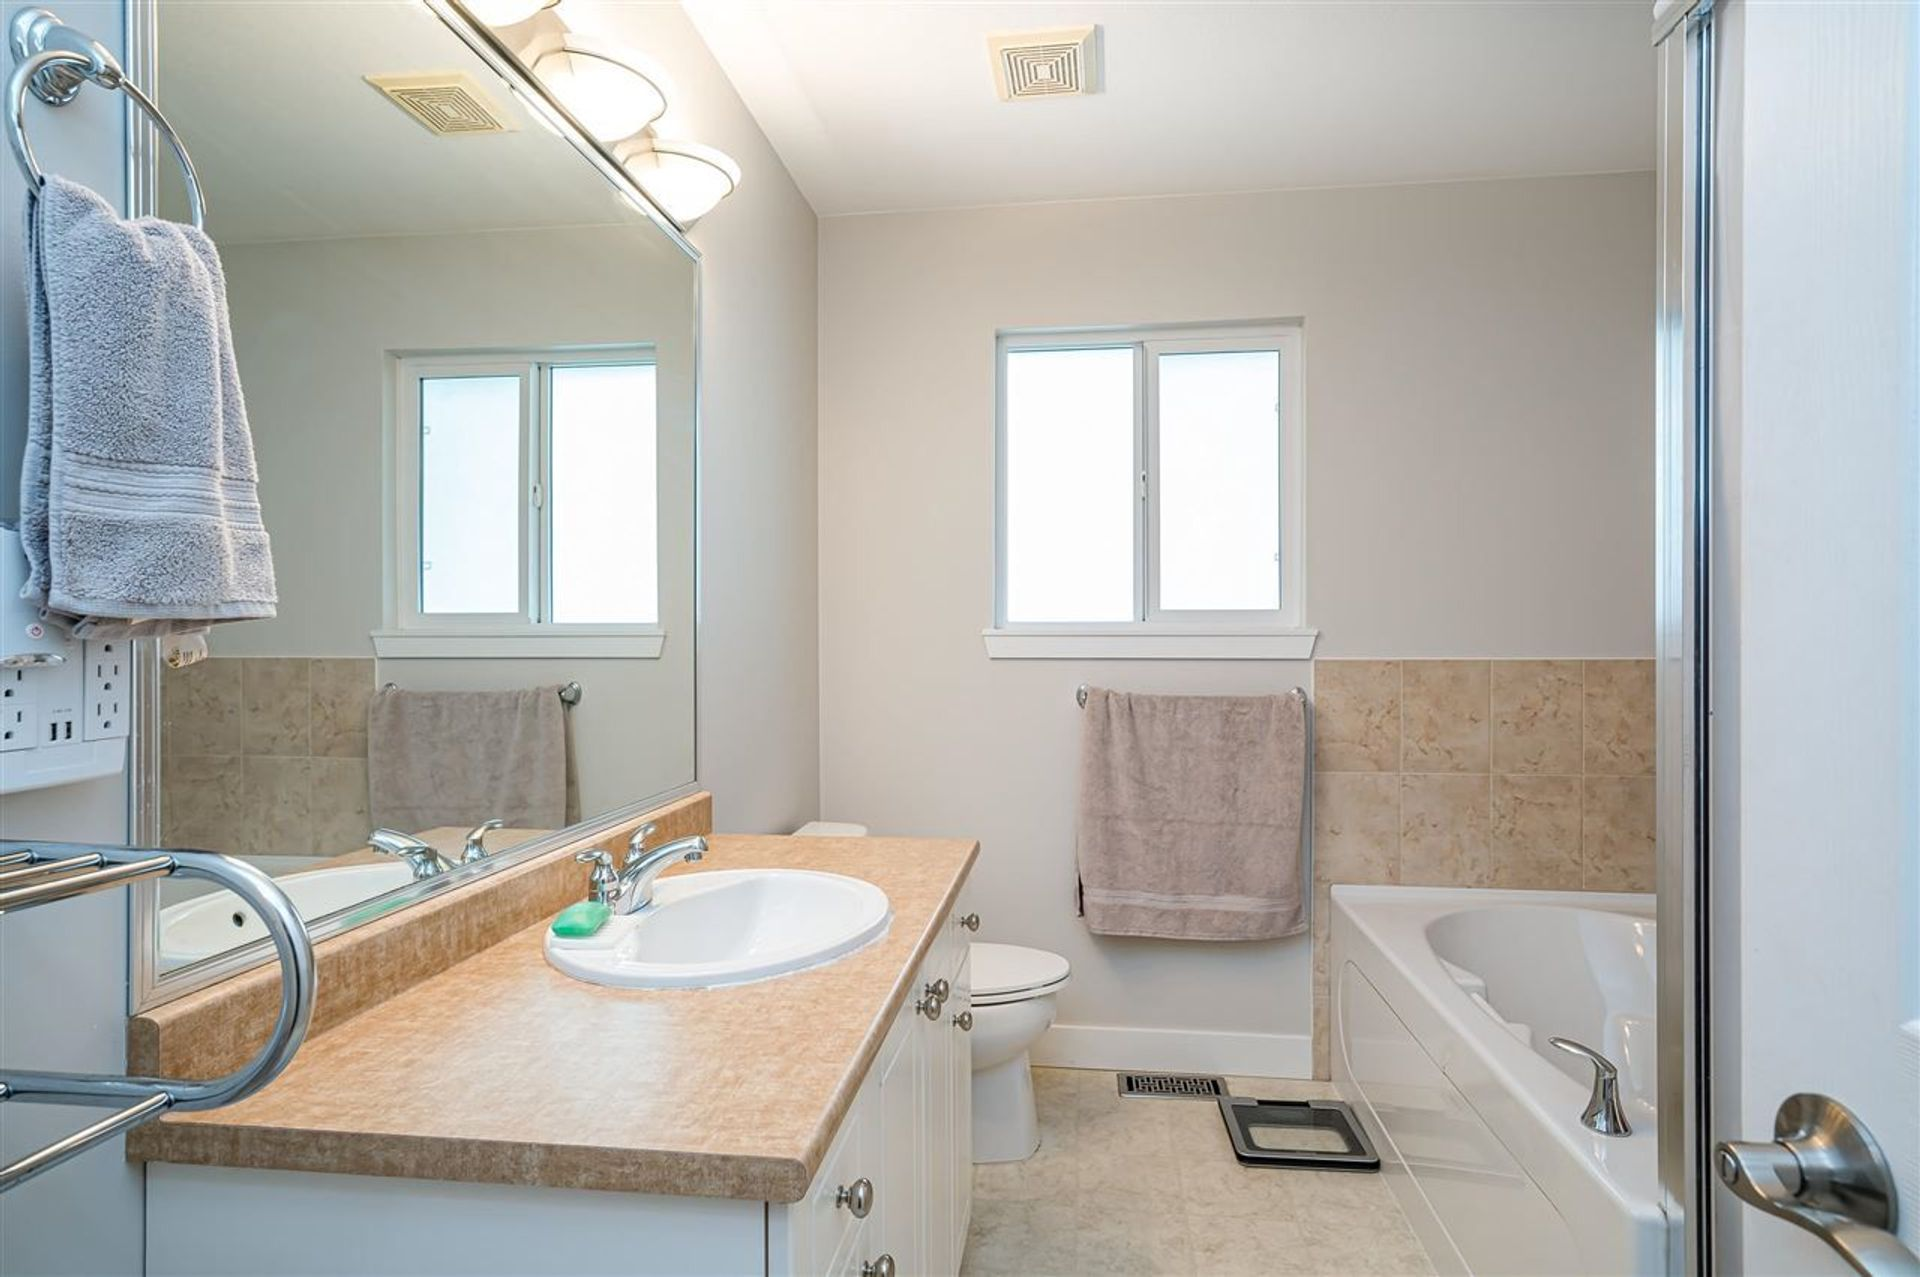 16538-60th-ave-avenue-cloverdale-bc-cloverdale-15 at 16538 60th Ave Avenue, Cloverdale BC, Cloverdale